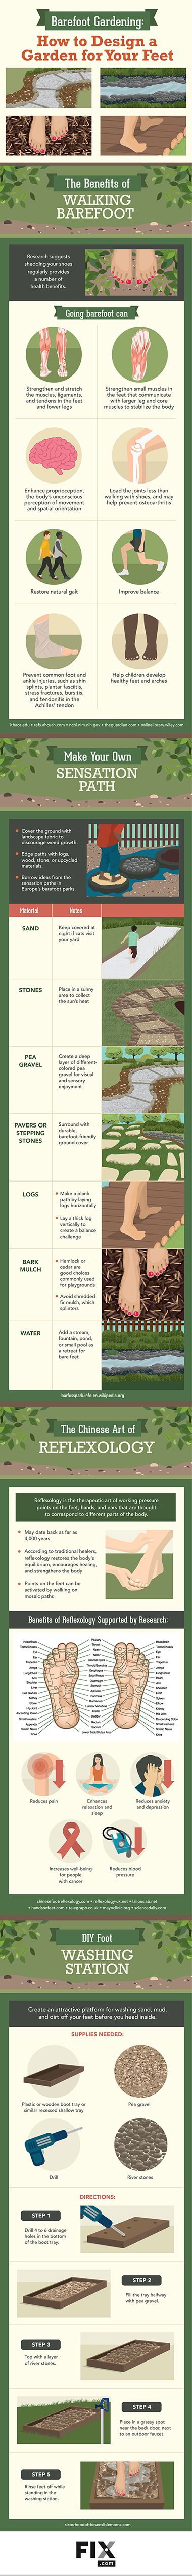 Learn about the structural benefits to your feet of walking barefoot outside on natural, varied terrain.